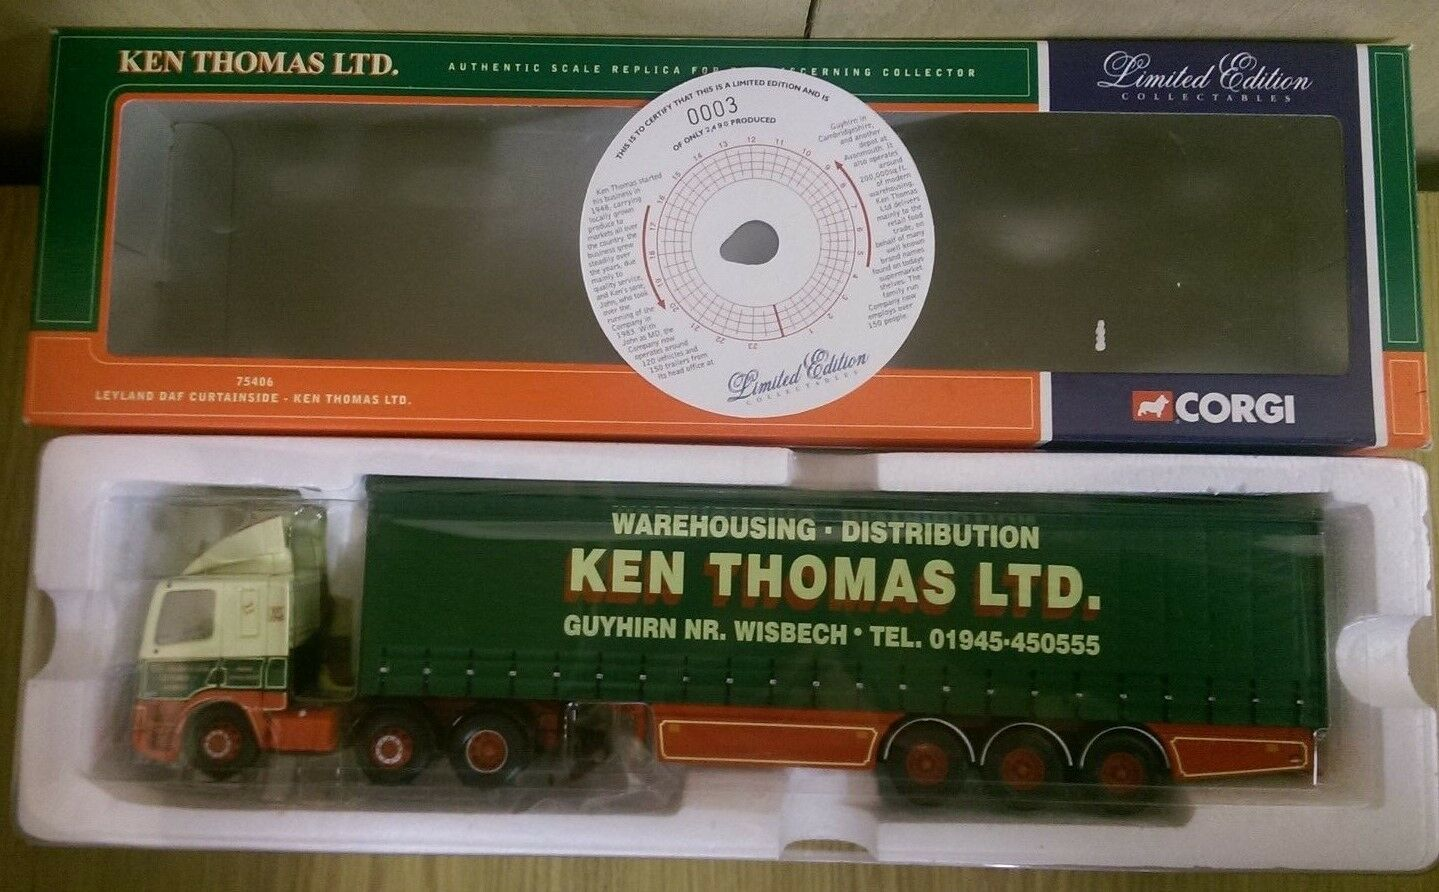 CORGI 75406 LEYLAND DAF Curtainside Kenny Thomas LTD EDITION no 0003 de 2490